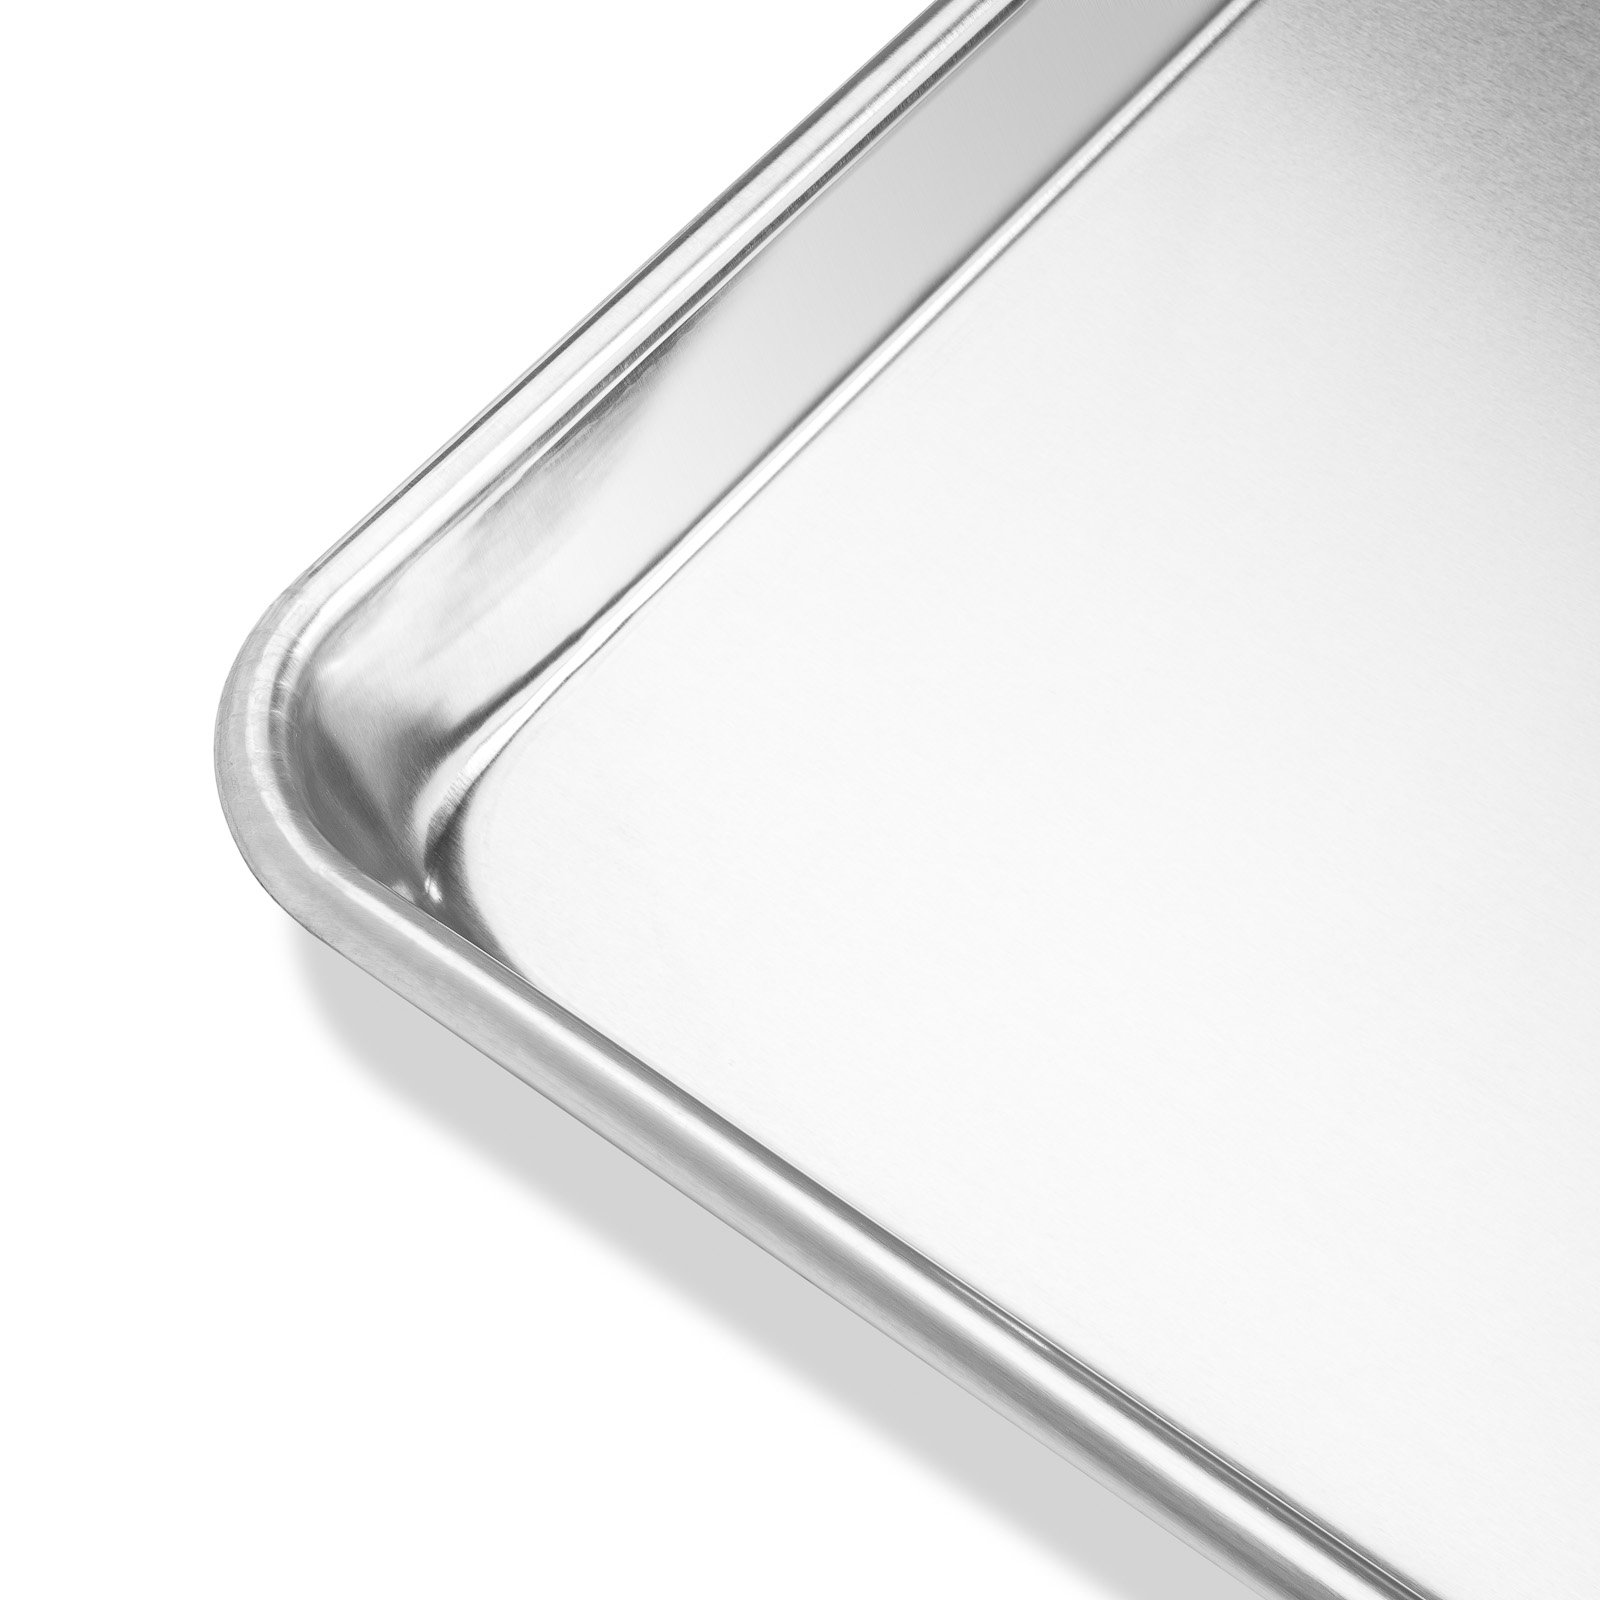 Last Confection 6 Cookie Baking Sheets 13'' x 18'' - Rimmed Aluminum Jelly Roll Trays - Half Sheet Pans by Last Confection (Image #4)